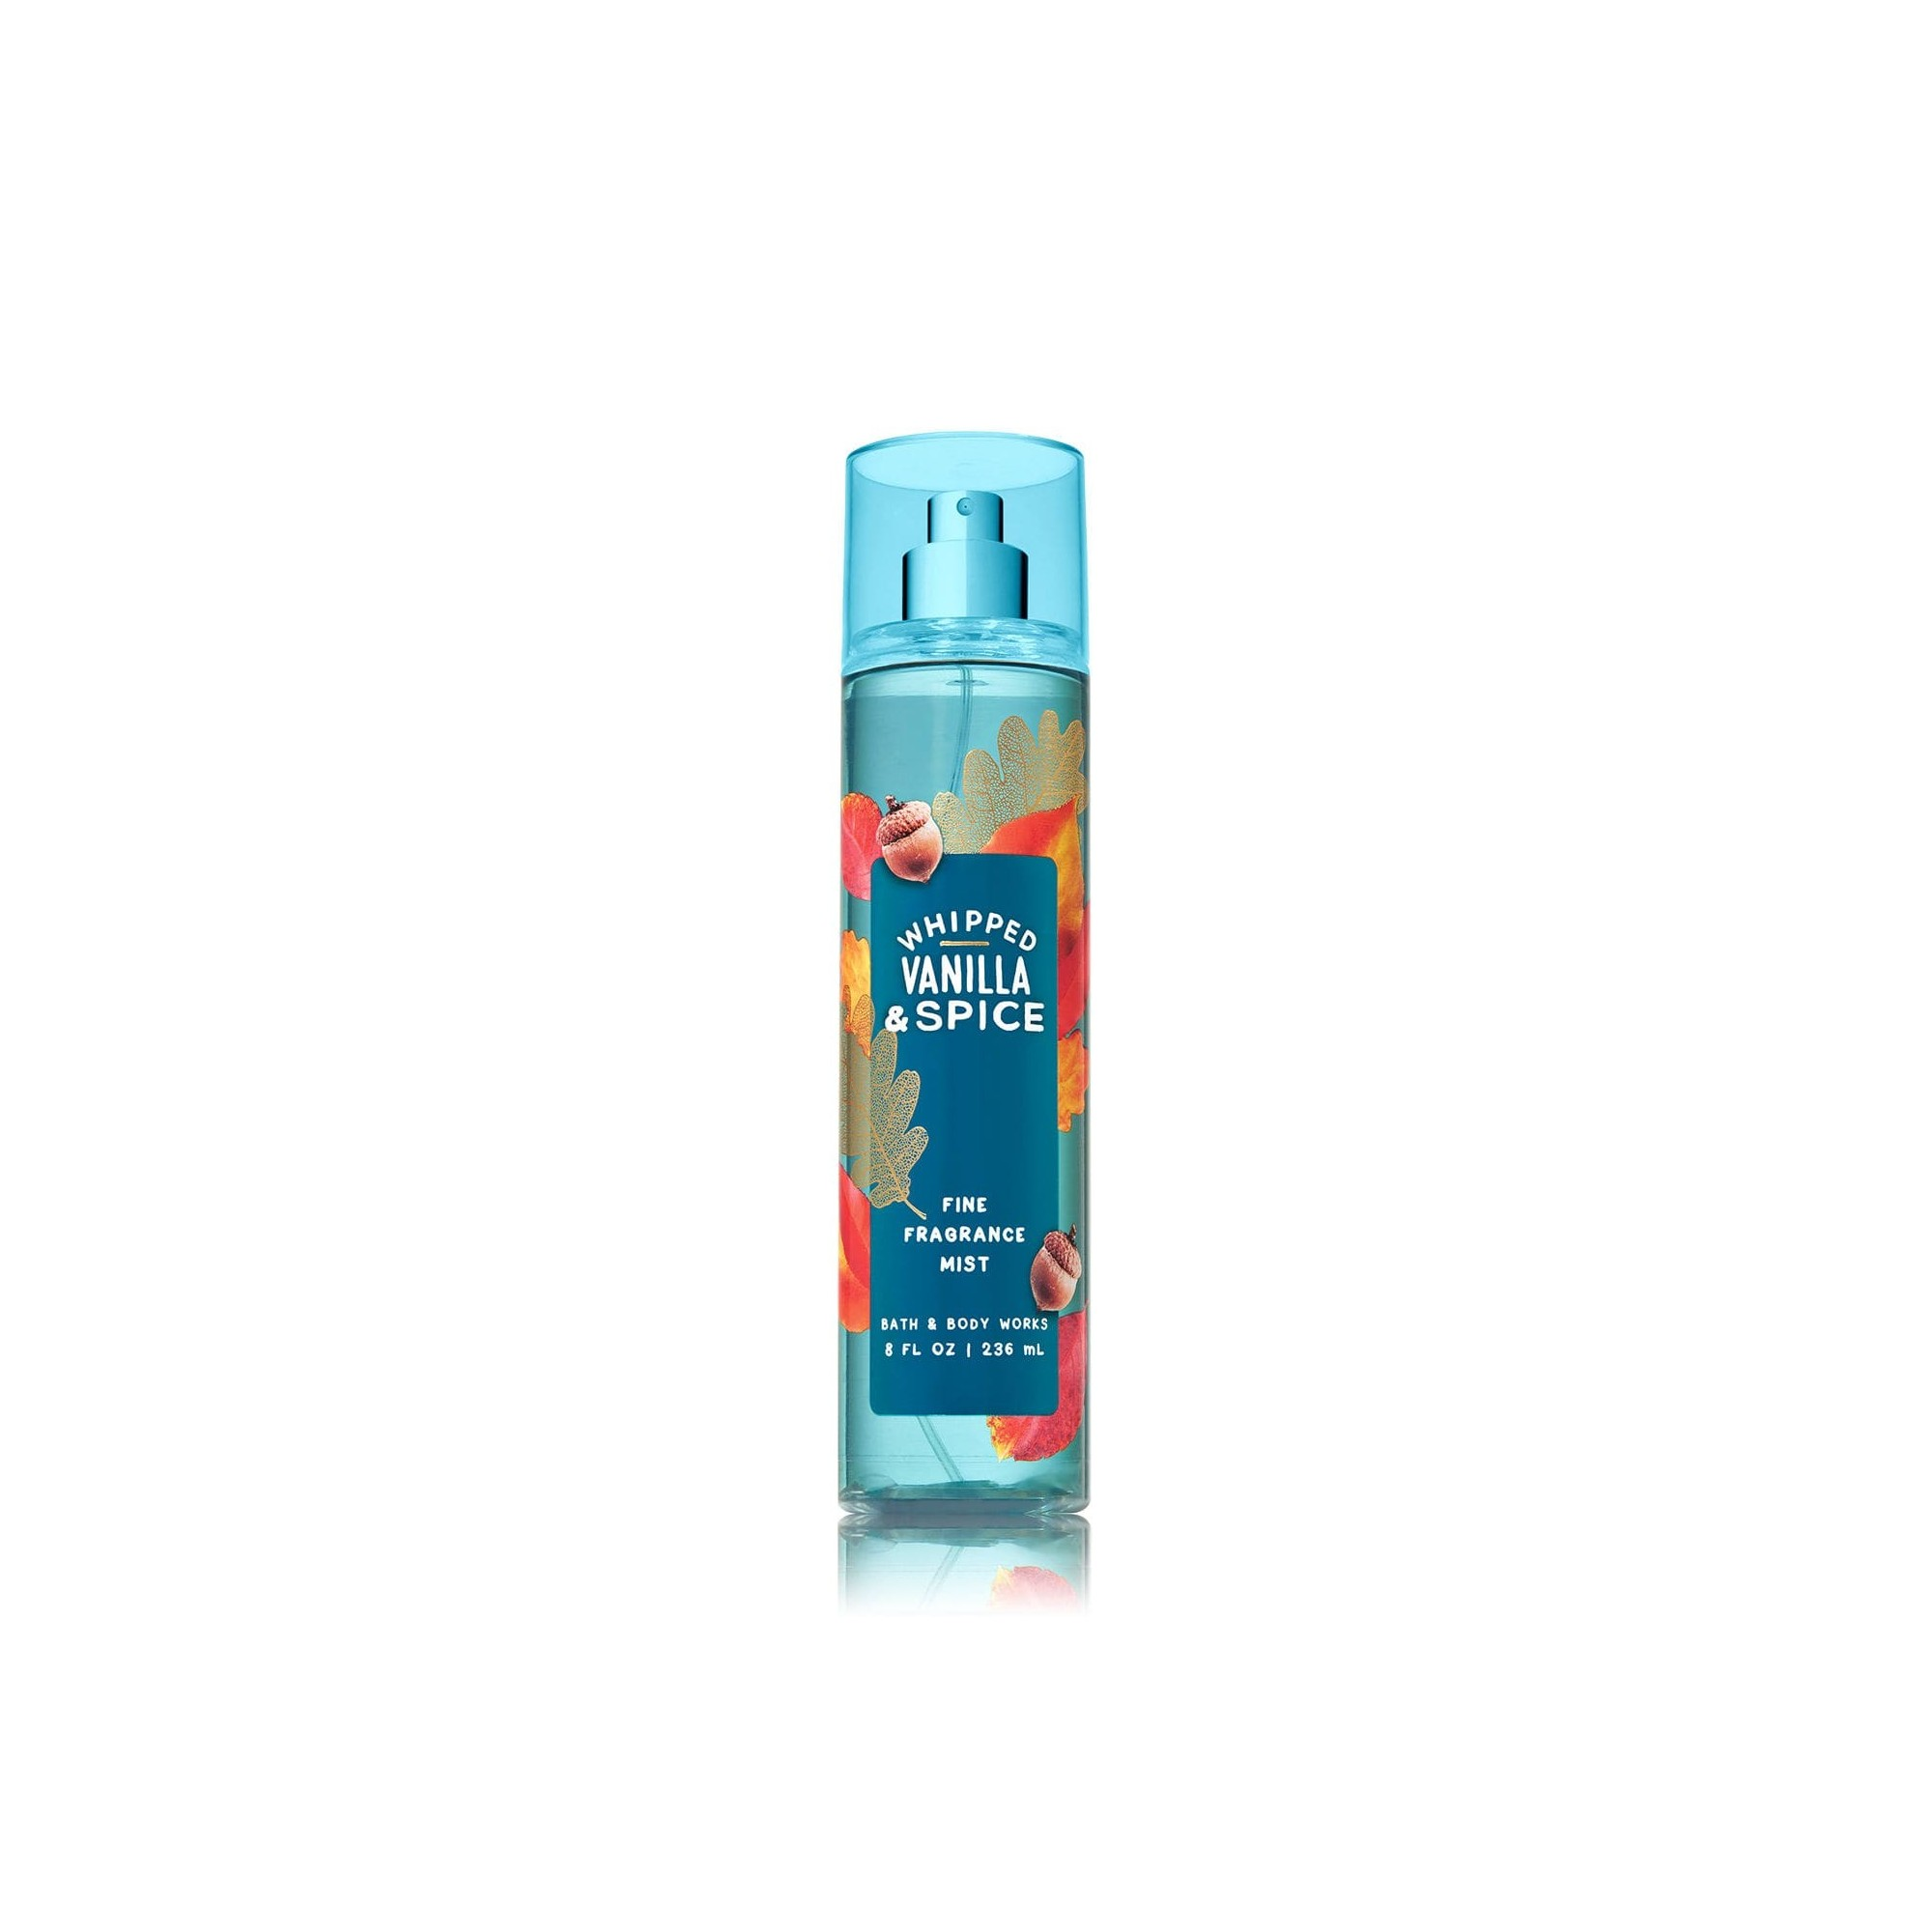 Bath & Body Works Whipped Vanilla & Spice Fine Fragrance Mist